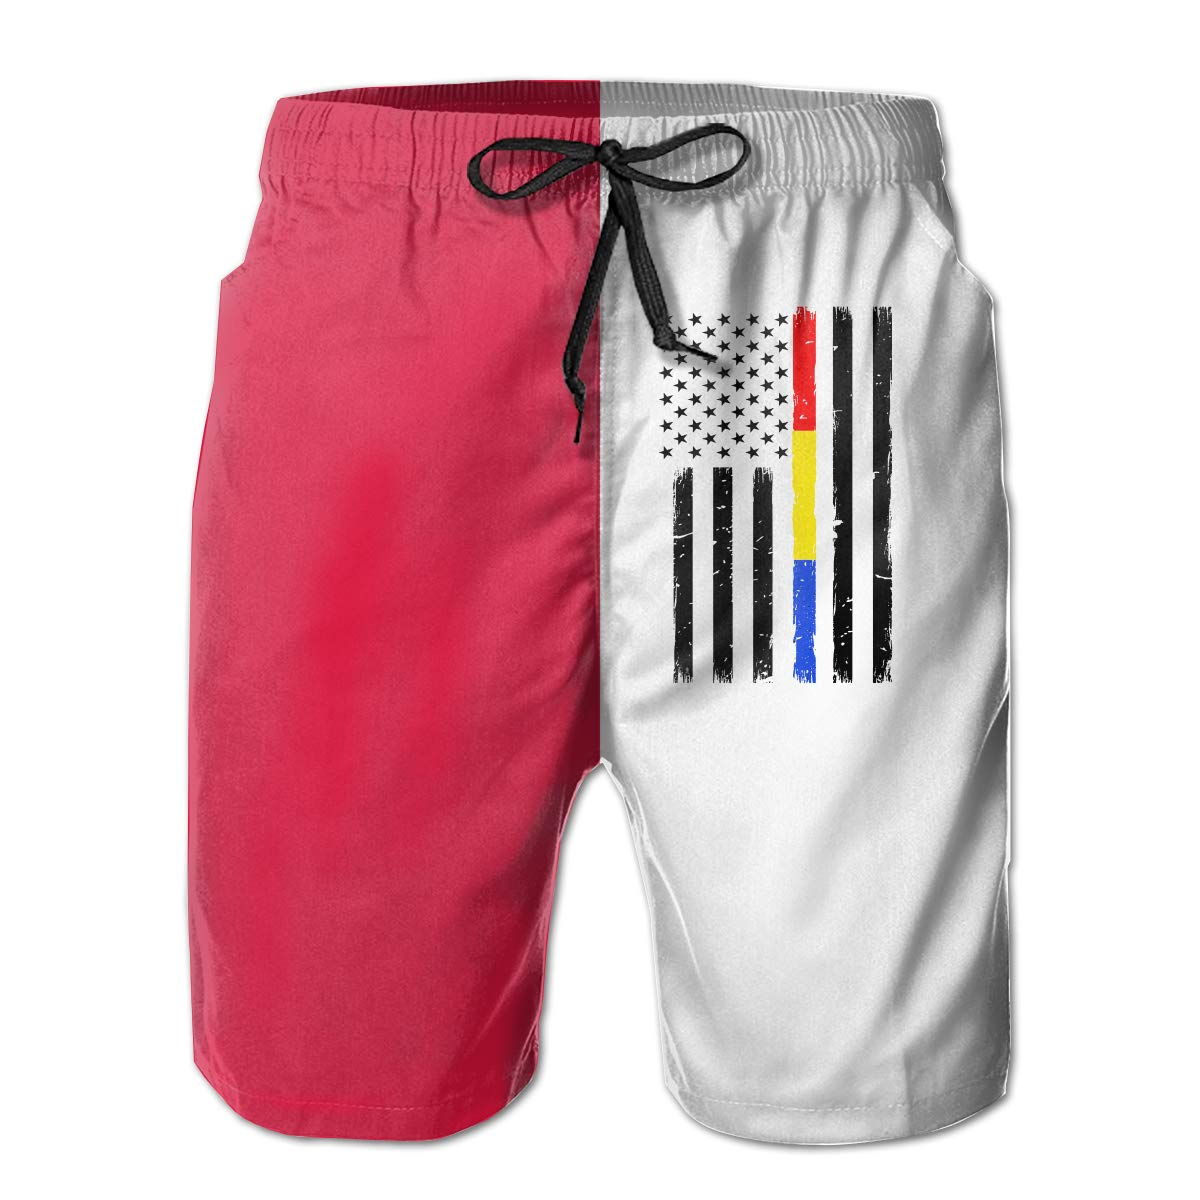 Xk7@KU Mens Quick Dry Beach Shorts Polyester Thin Red Blue Gold Line Flag Board Shorts with Pockets